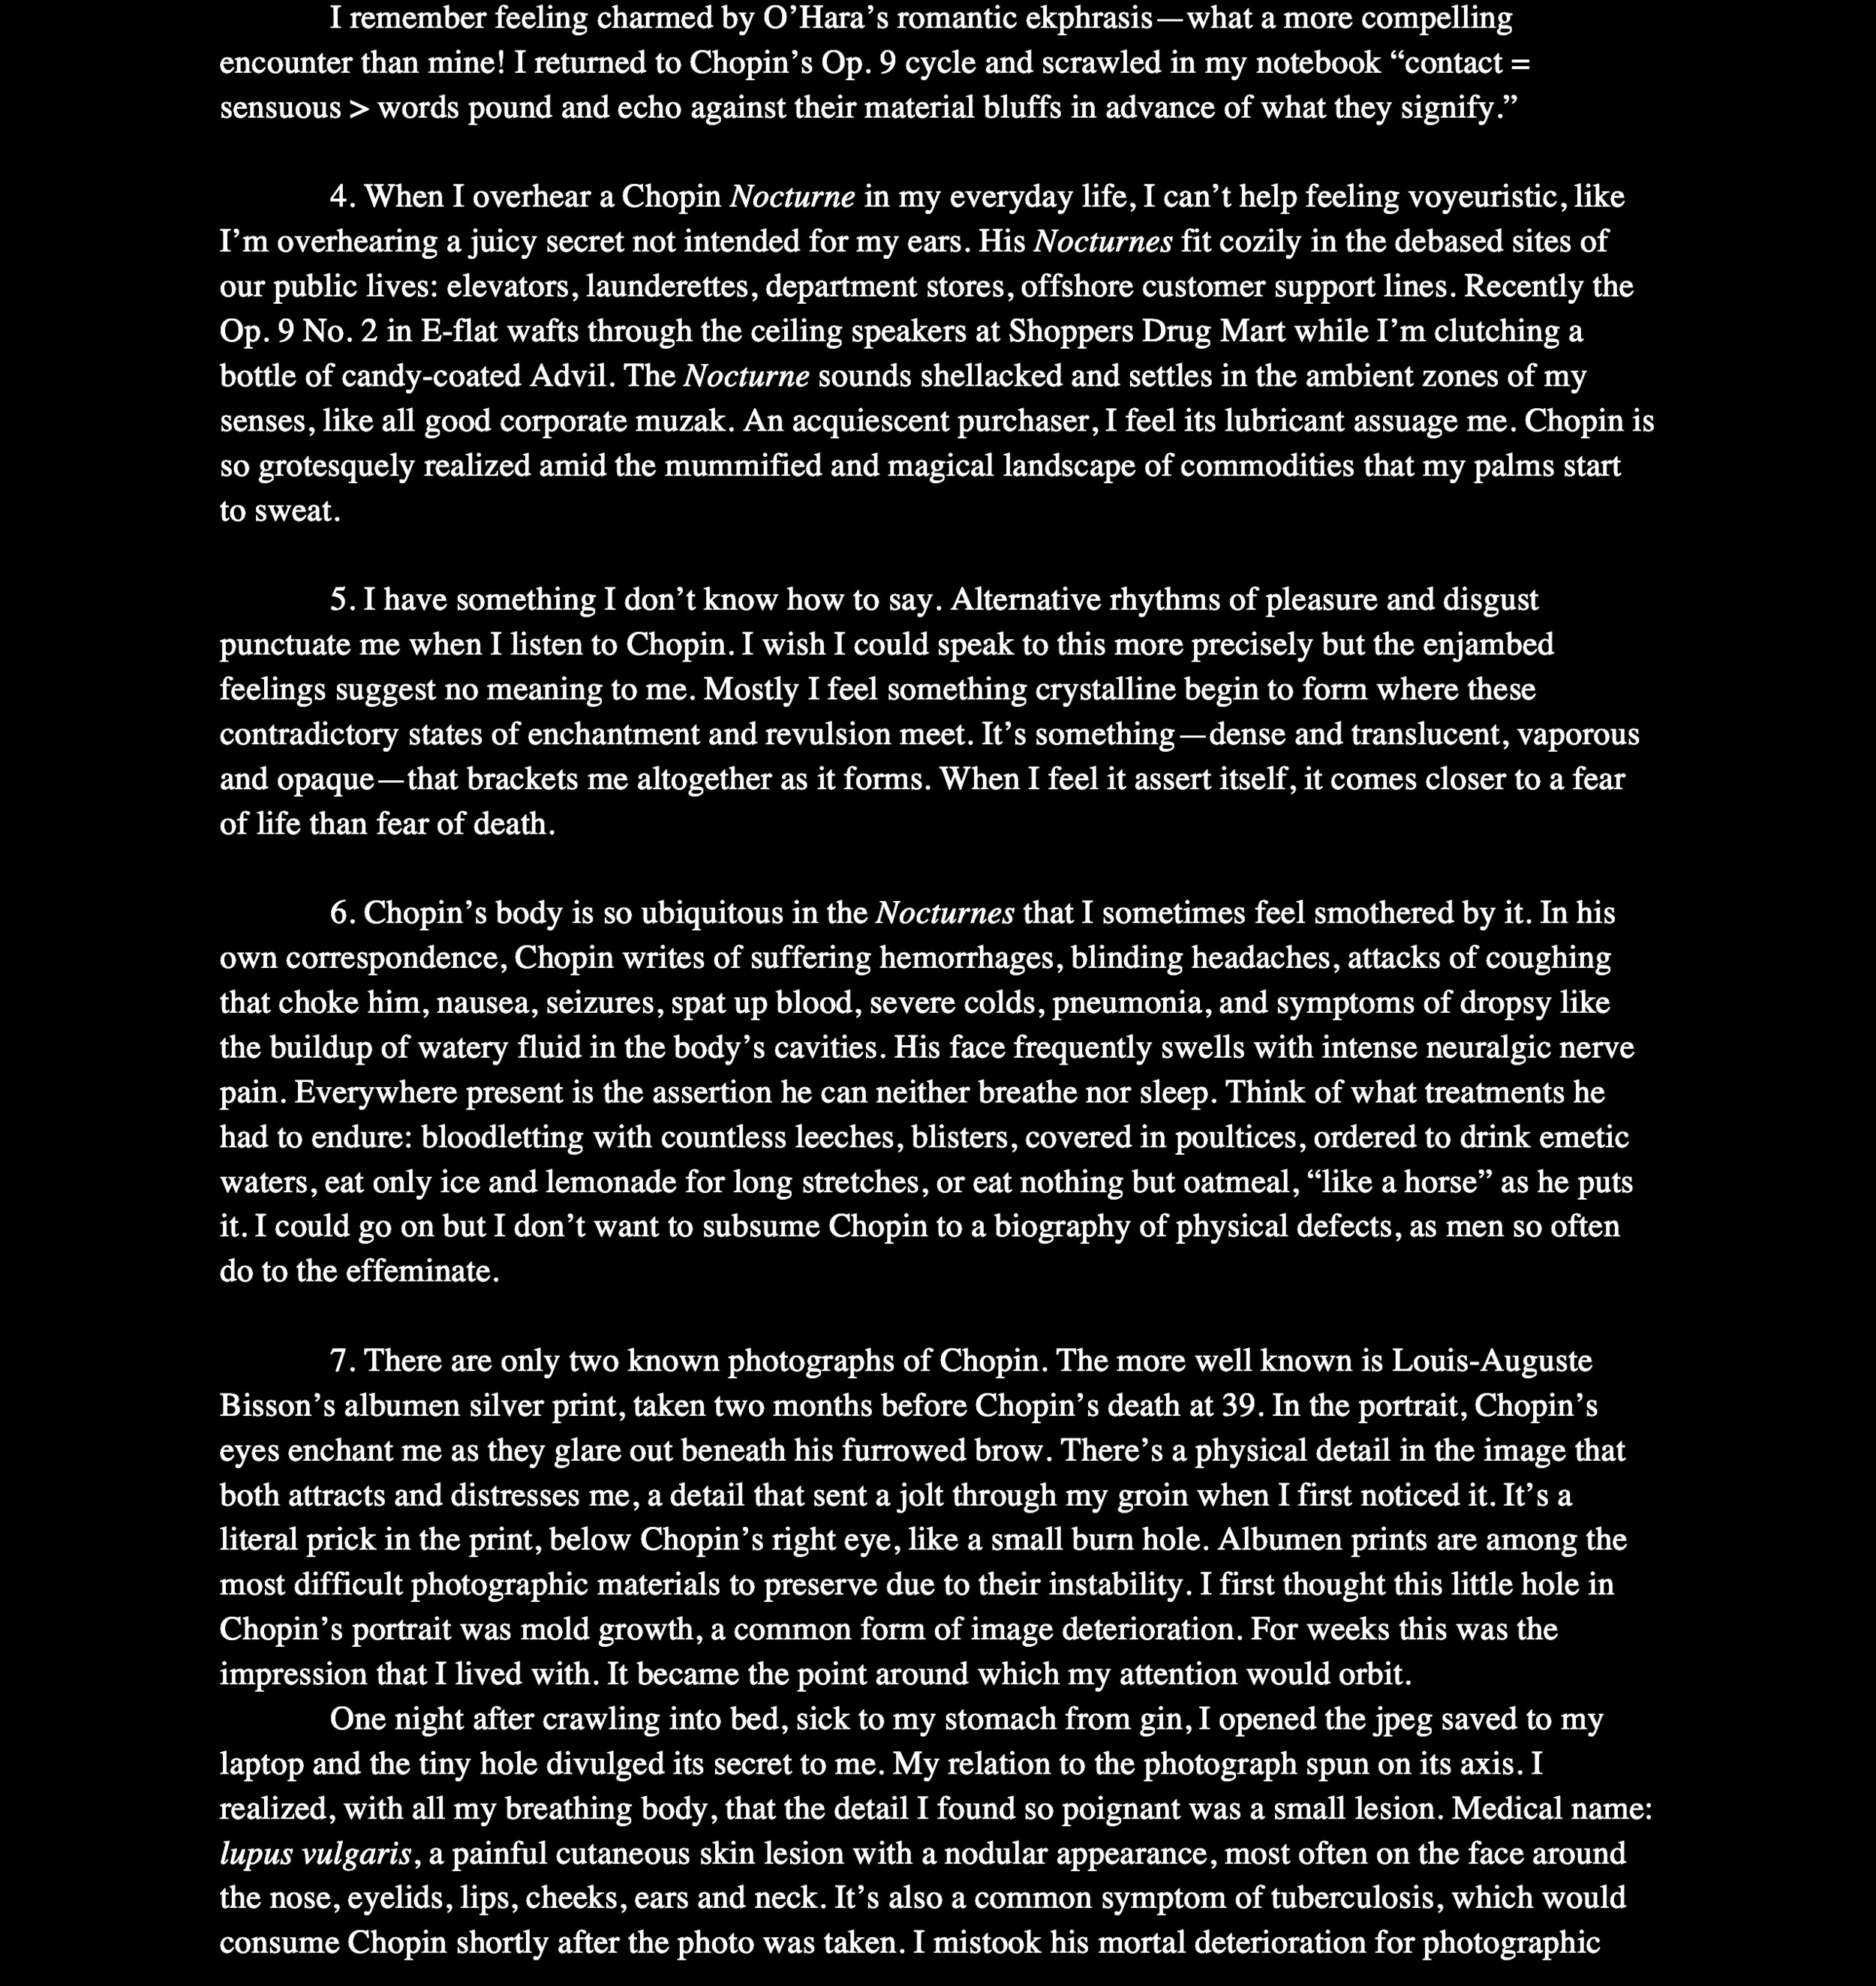 fares-chopin-narrative-submission 2 15.png